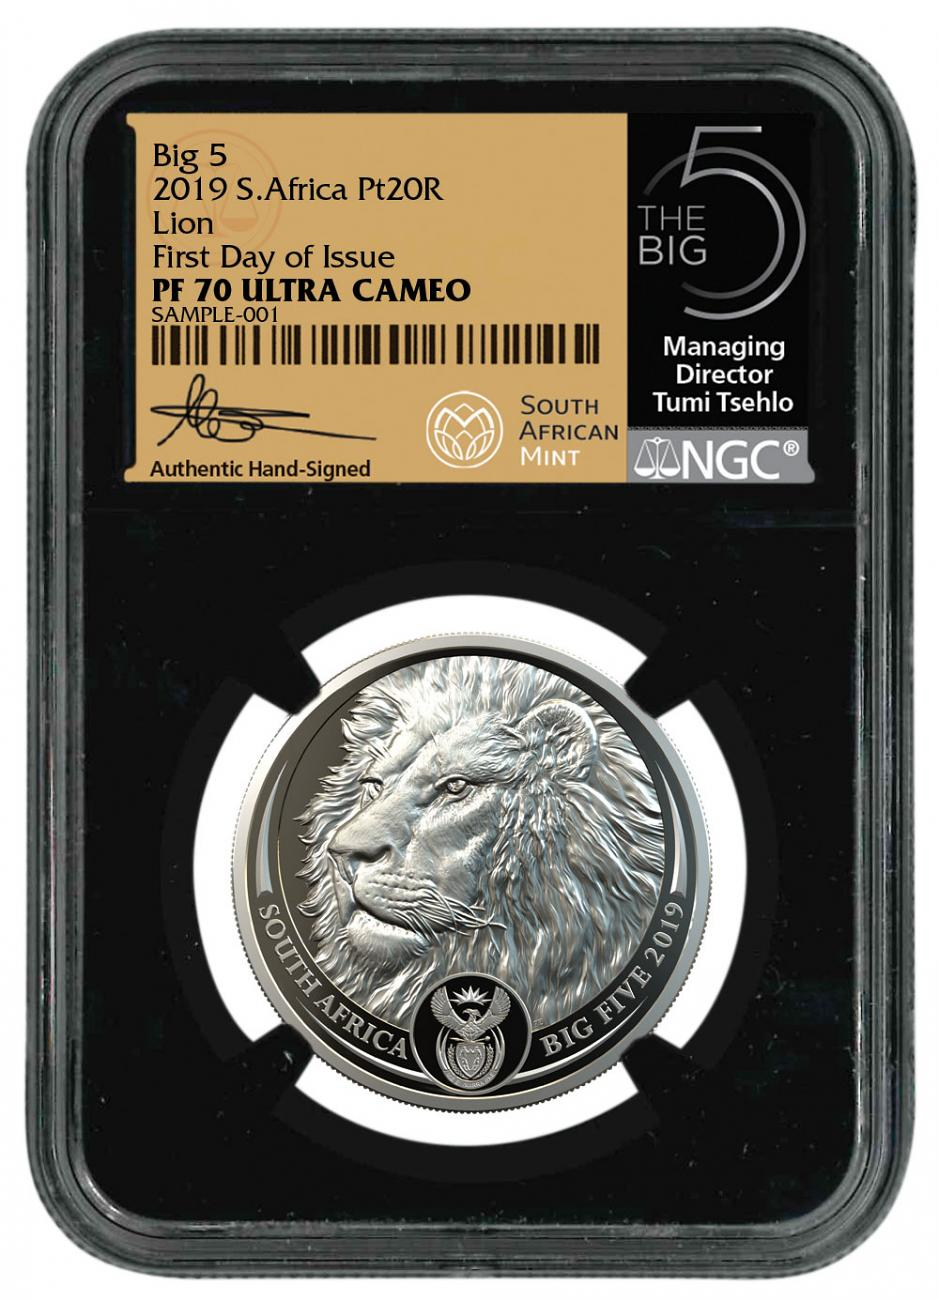 2019 South Africa 1 oz. Platinum R20 Big 5 Lion Scarce and Unique Coin Division NGC PF70 UC FDI Tumi Signature Label